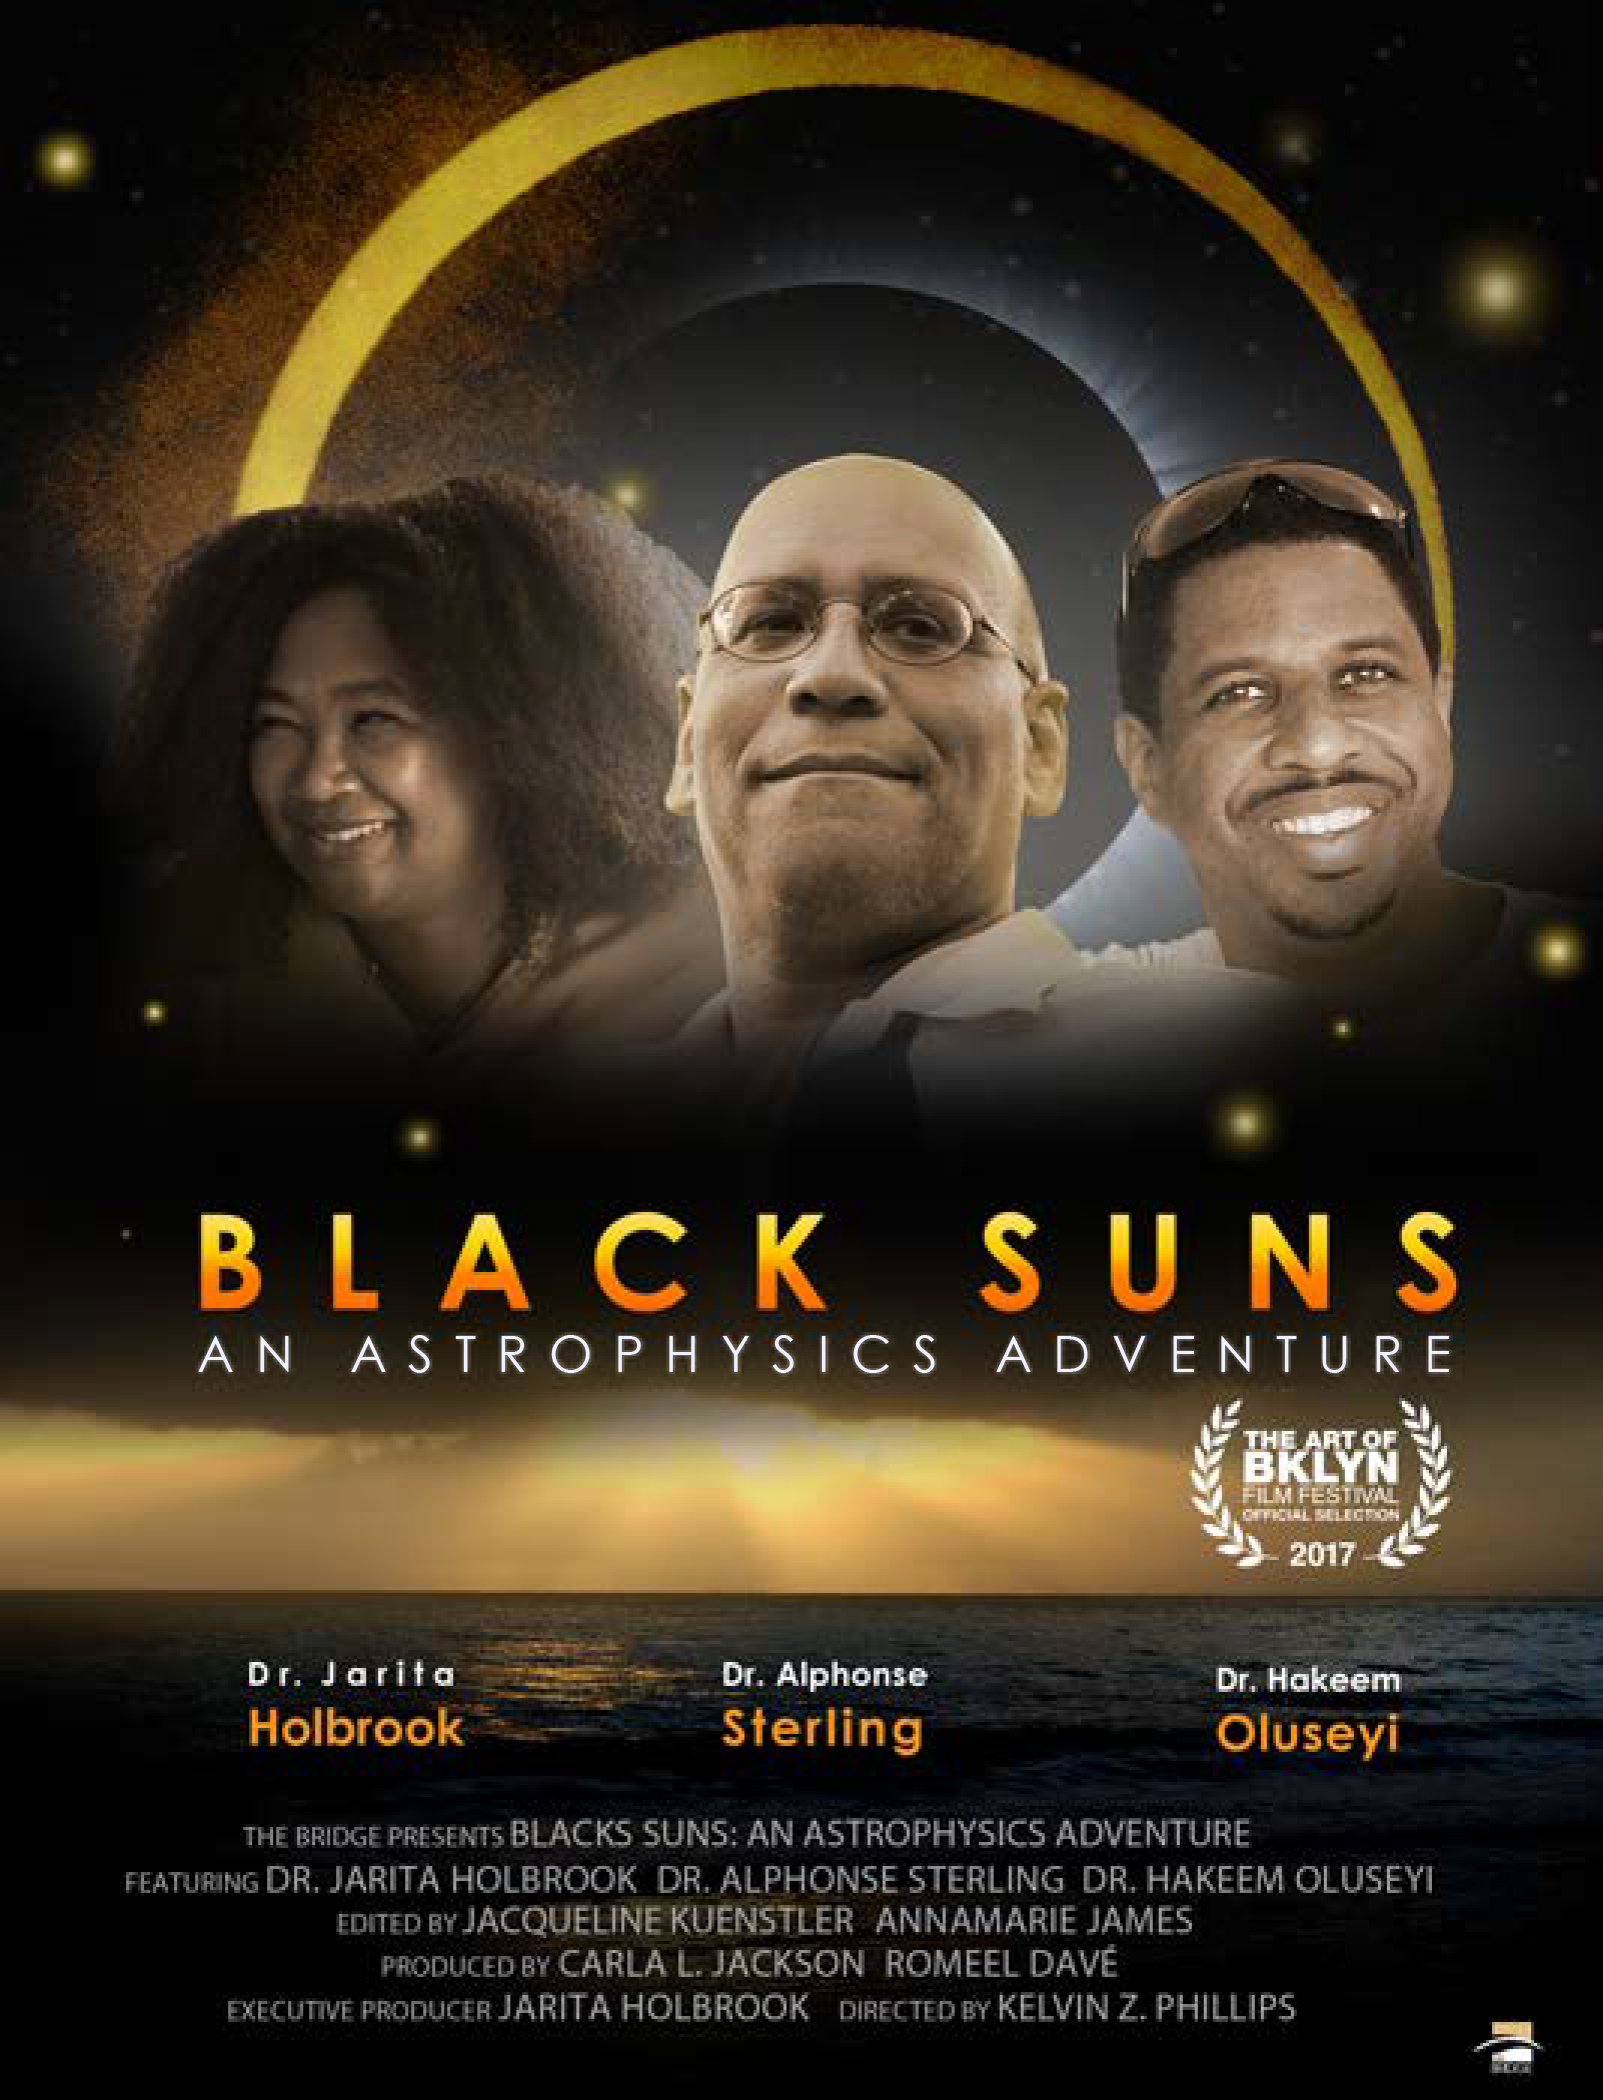 NASA Marshall's Dr. Alphonse Sterling, Subject of 'Black Suns' Eclipse Documentary, Prepares for Aug. 21 Total Solar Eclipse